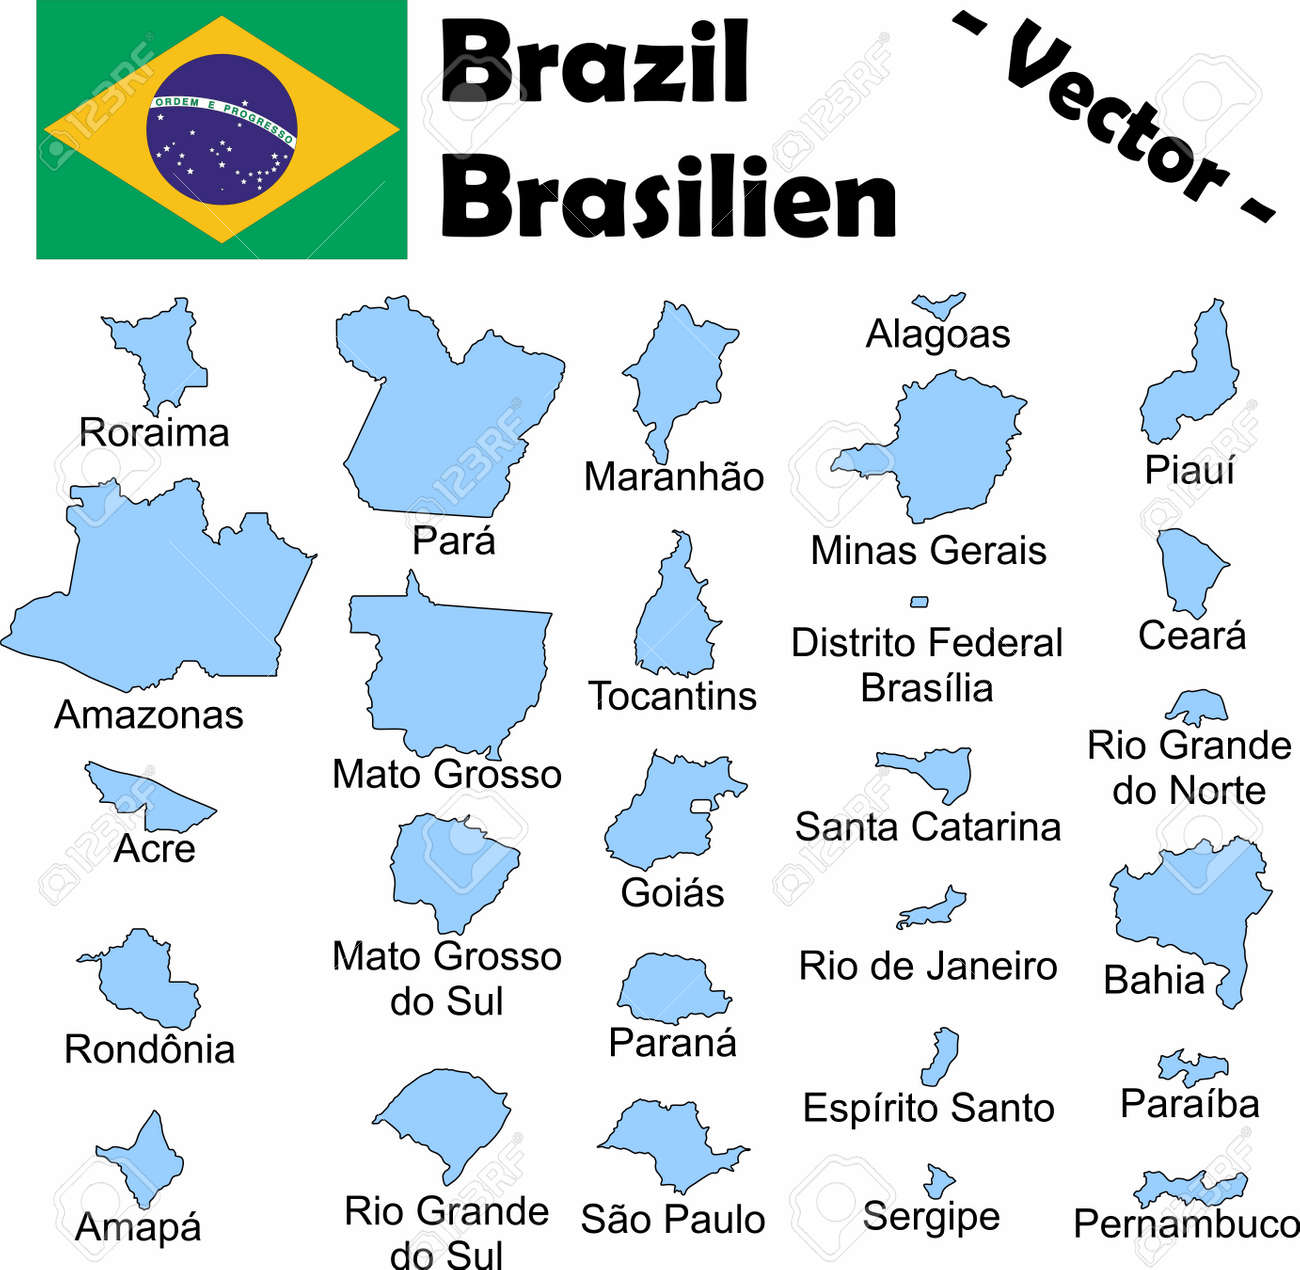 The Administrative Divisions Of Brazil With Names Royalty Free